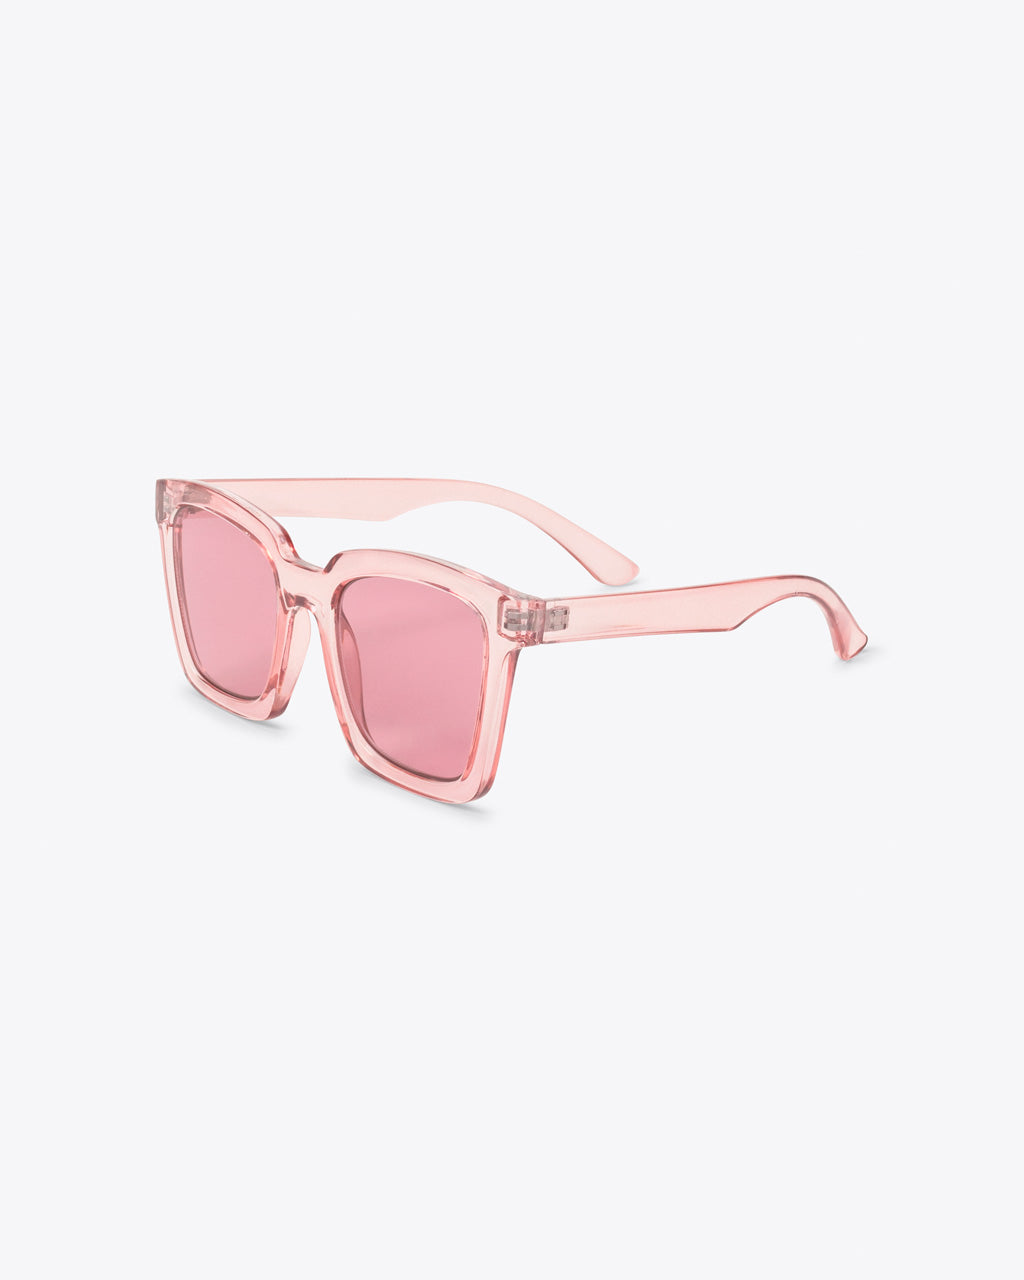 side view of square sunglasses with translucent pink frames and pink lenses